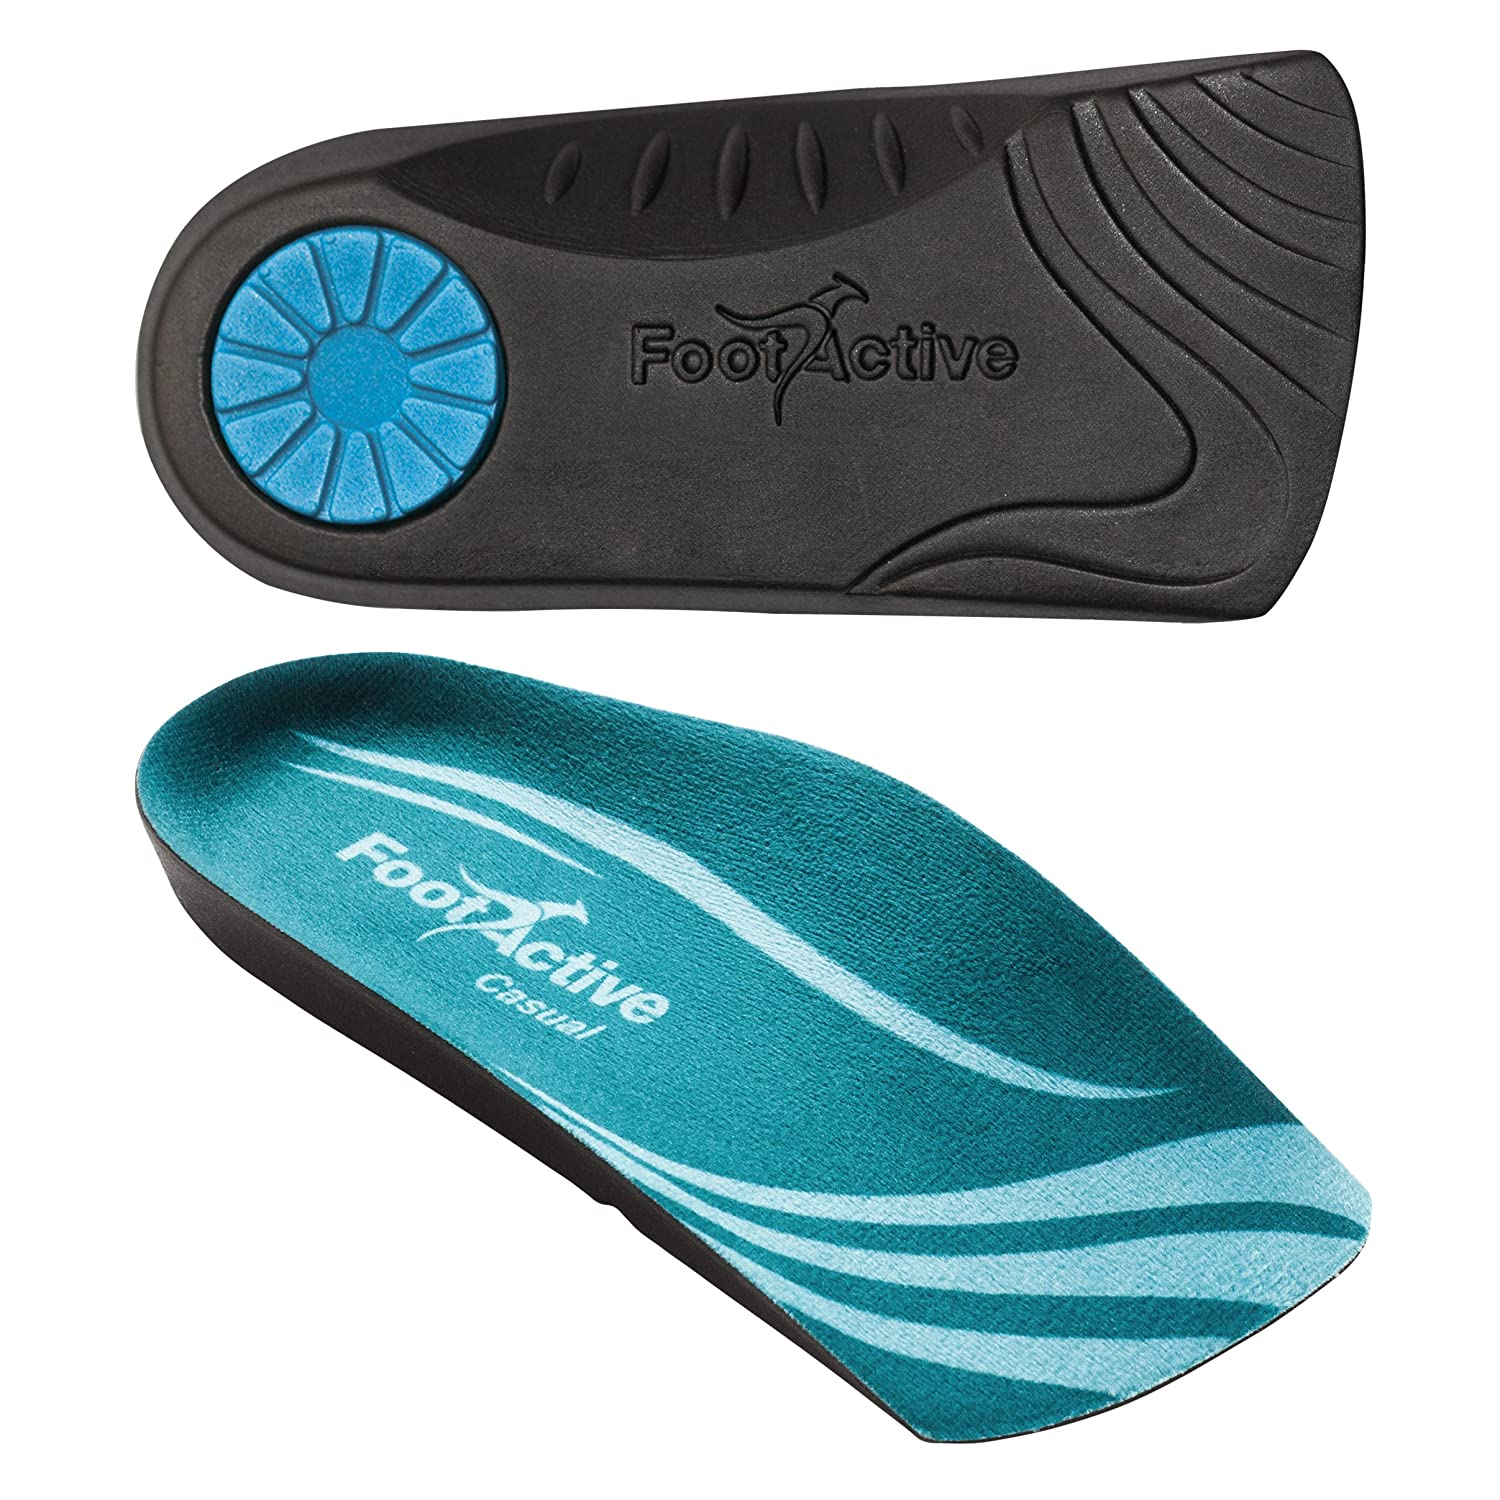 FootActive CASUAL 3//4 Length insole for heel pain plantar fasciitis knee and back pain heelspurs